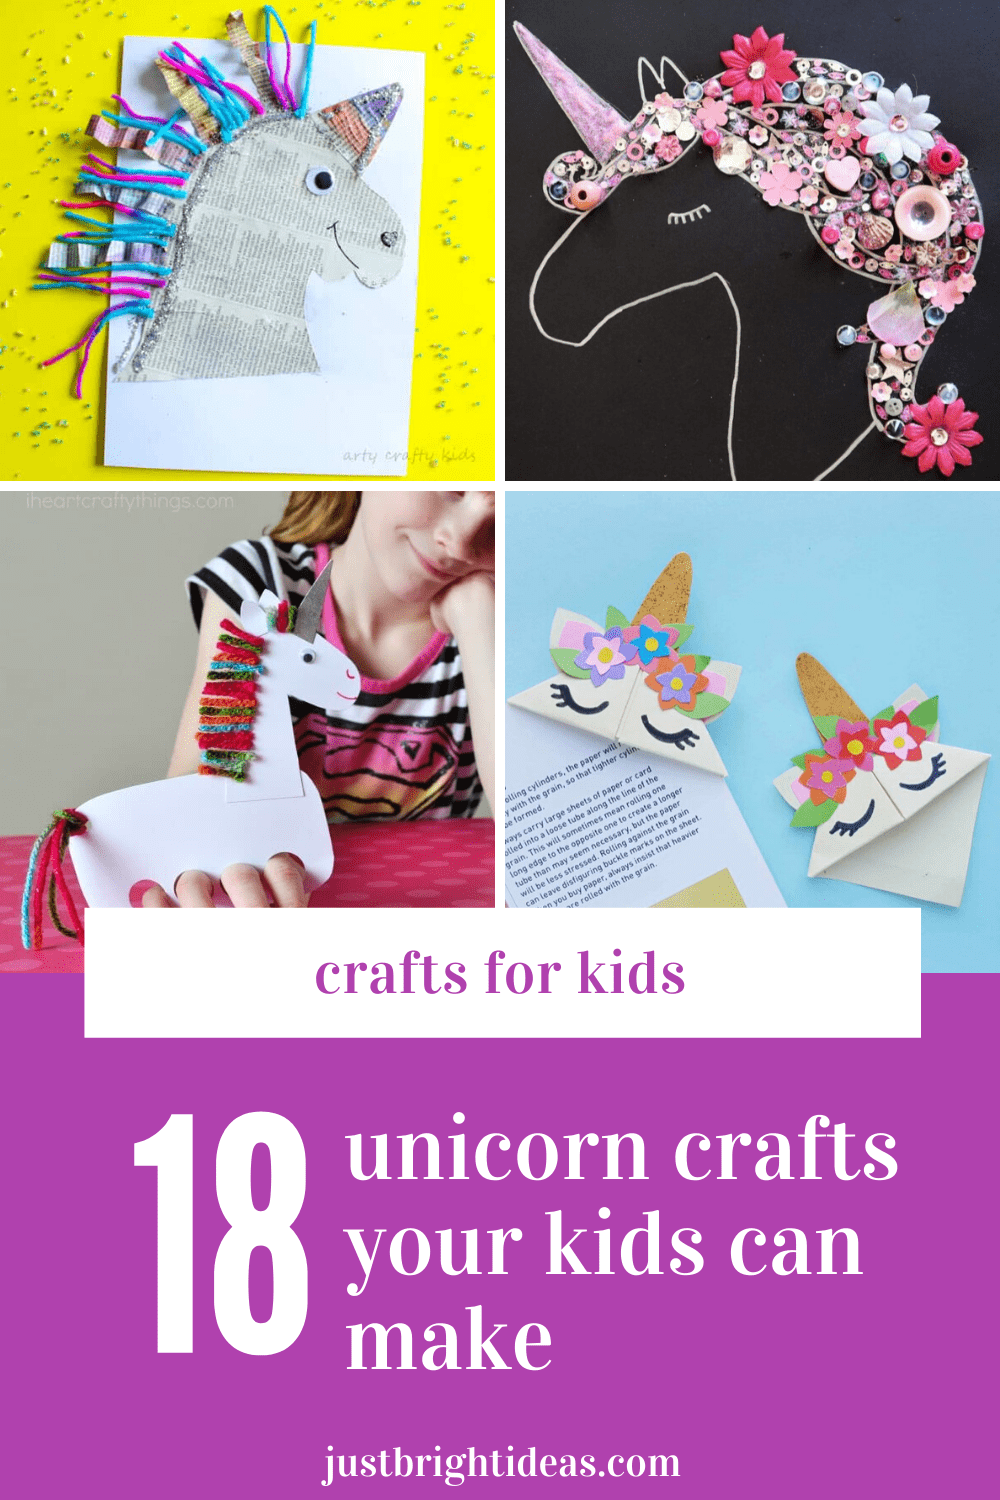 Unicorn alert! These kid's crafts are super fun and super easy to make too - go grab the craft box!